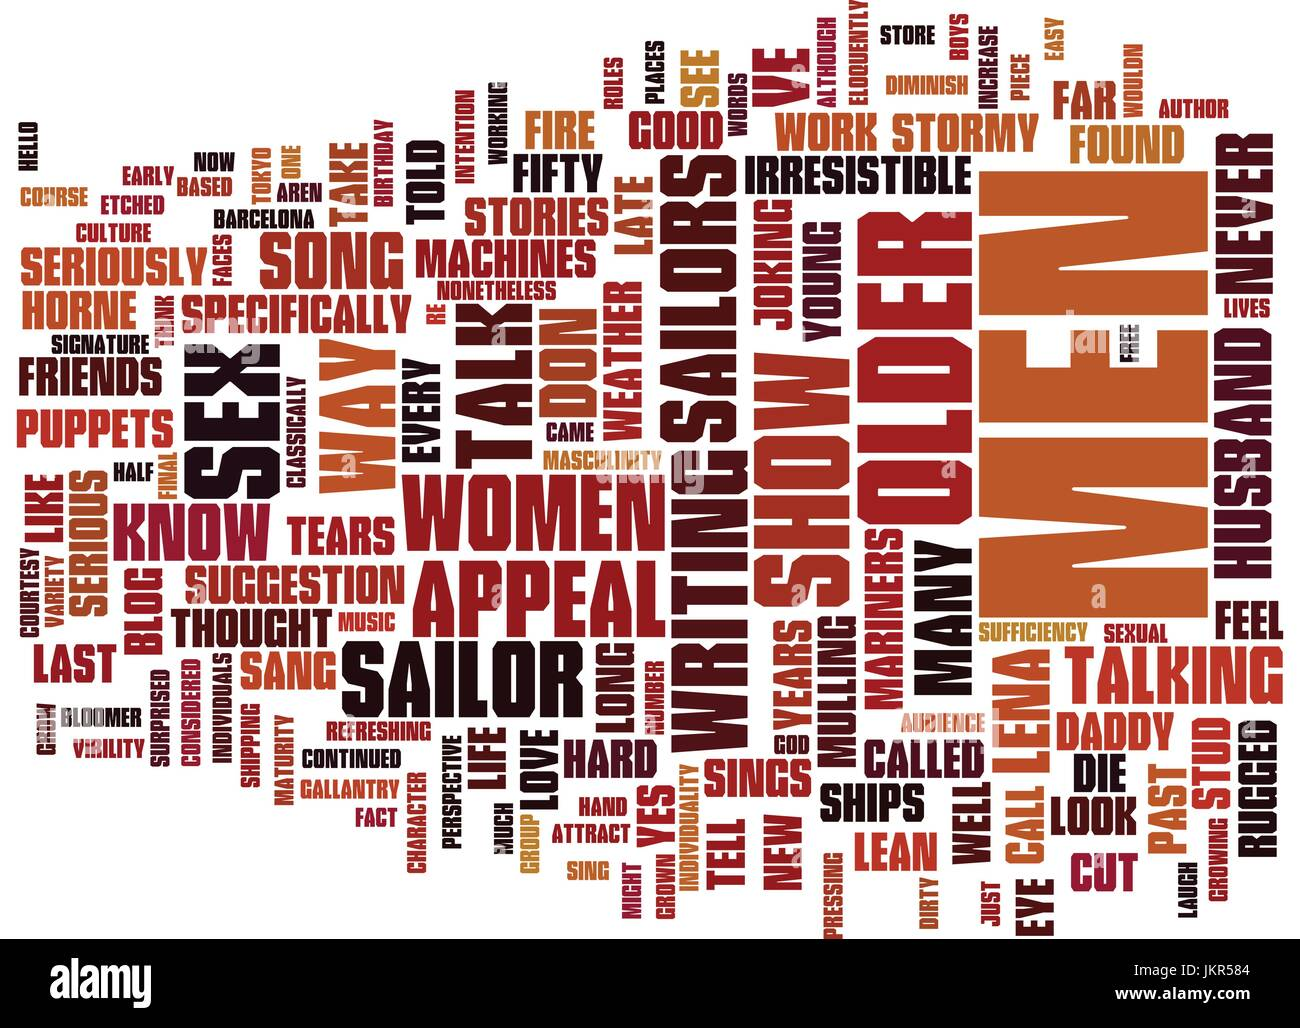 THE APPEAL OF OLDER MEN Text Background Word Cloud Concept - Stock Vector